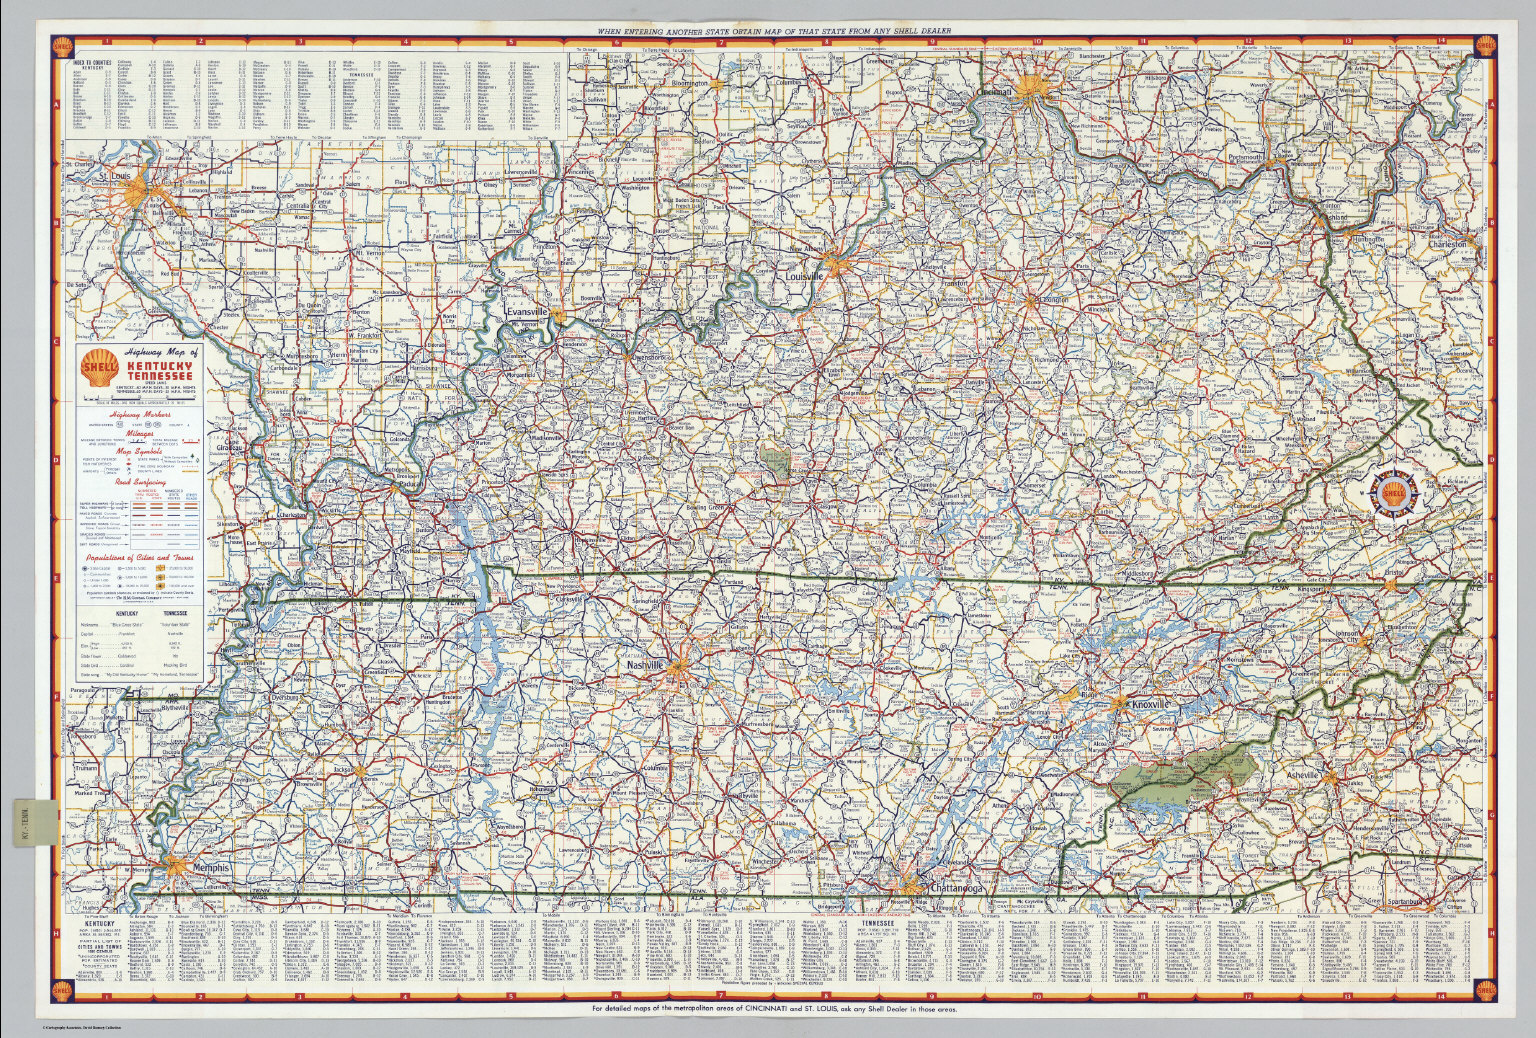 Tennessee Highway Map Swimnovacom - Tennessee road map